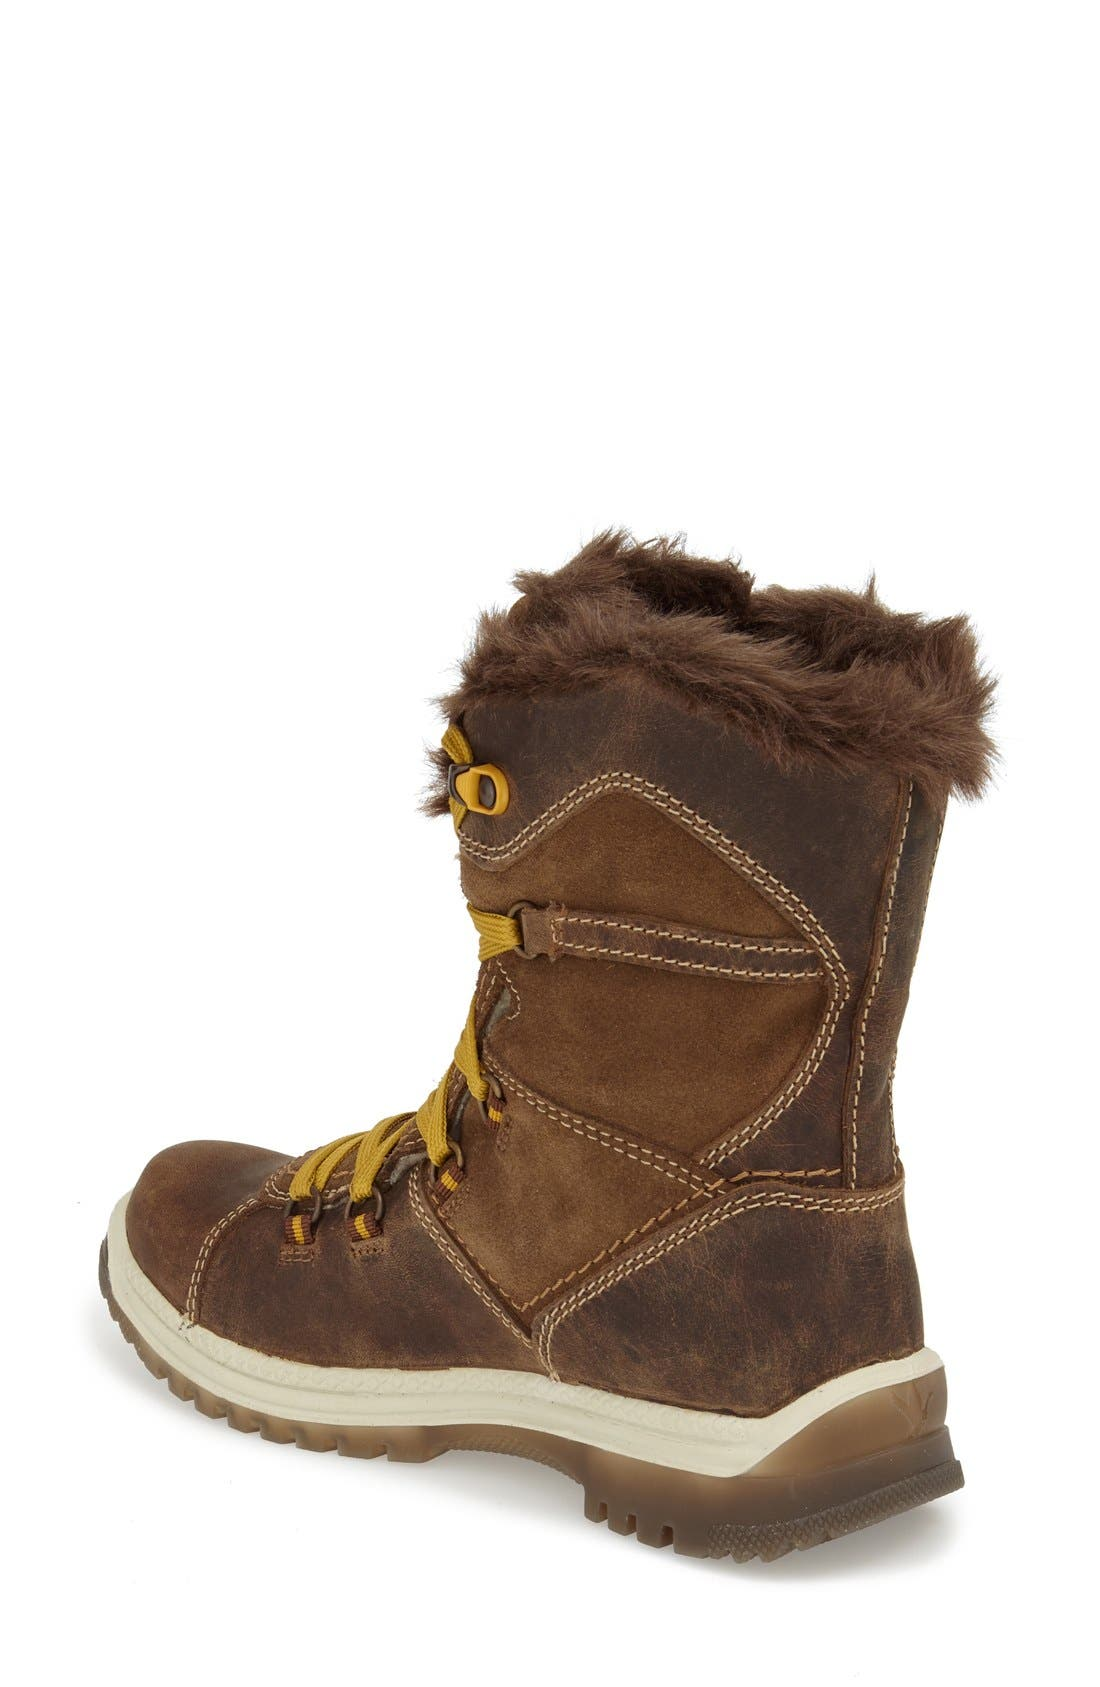 'Majesta' Faux Fur Boot,                             Alternate thumbnail 2, color,                             Brown Leather